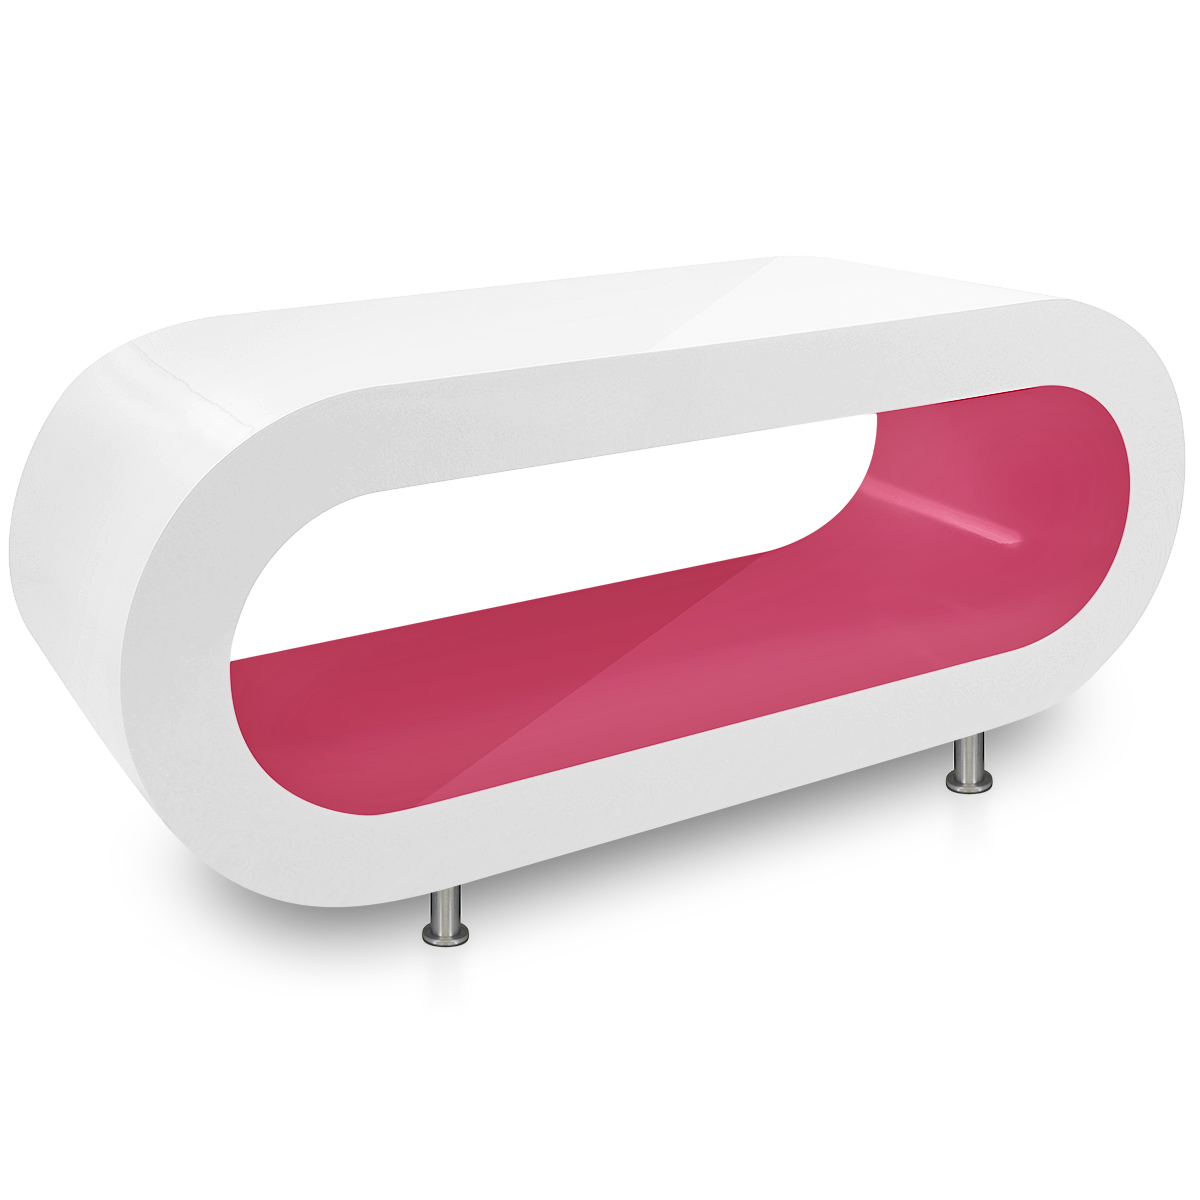 Orbit Coffee table in Pink & White Atlantic Shopping 199.00